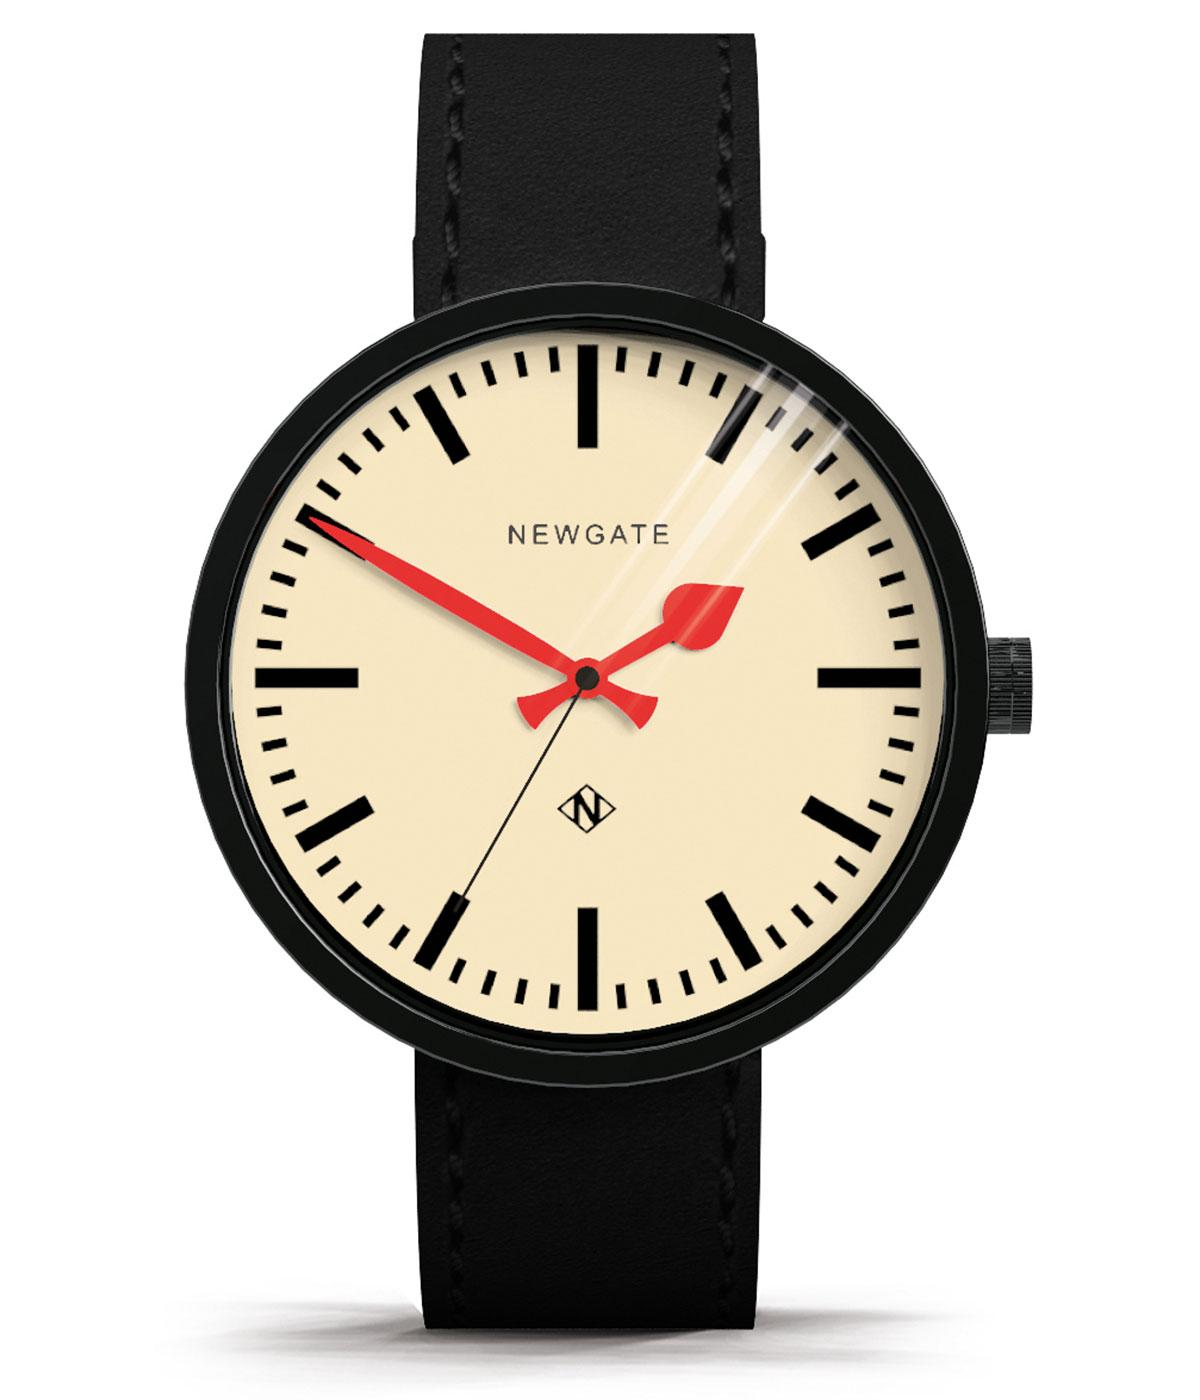 The Drummer Grand NEWGATE WATCHES Retro Mod Watch